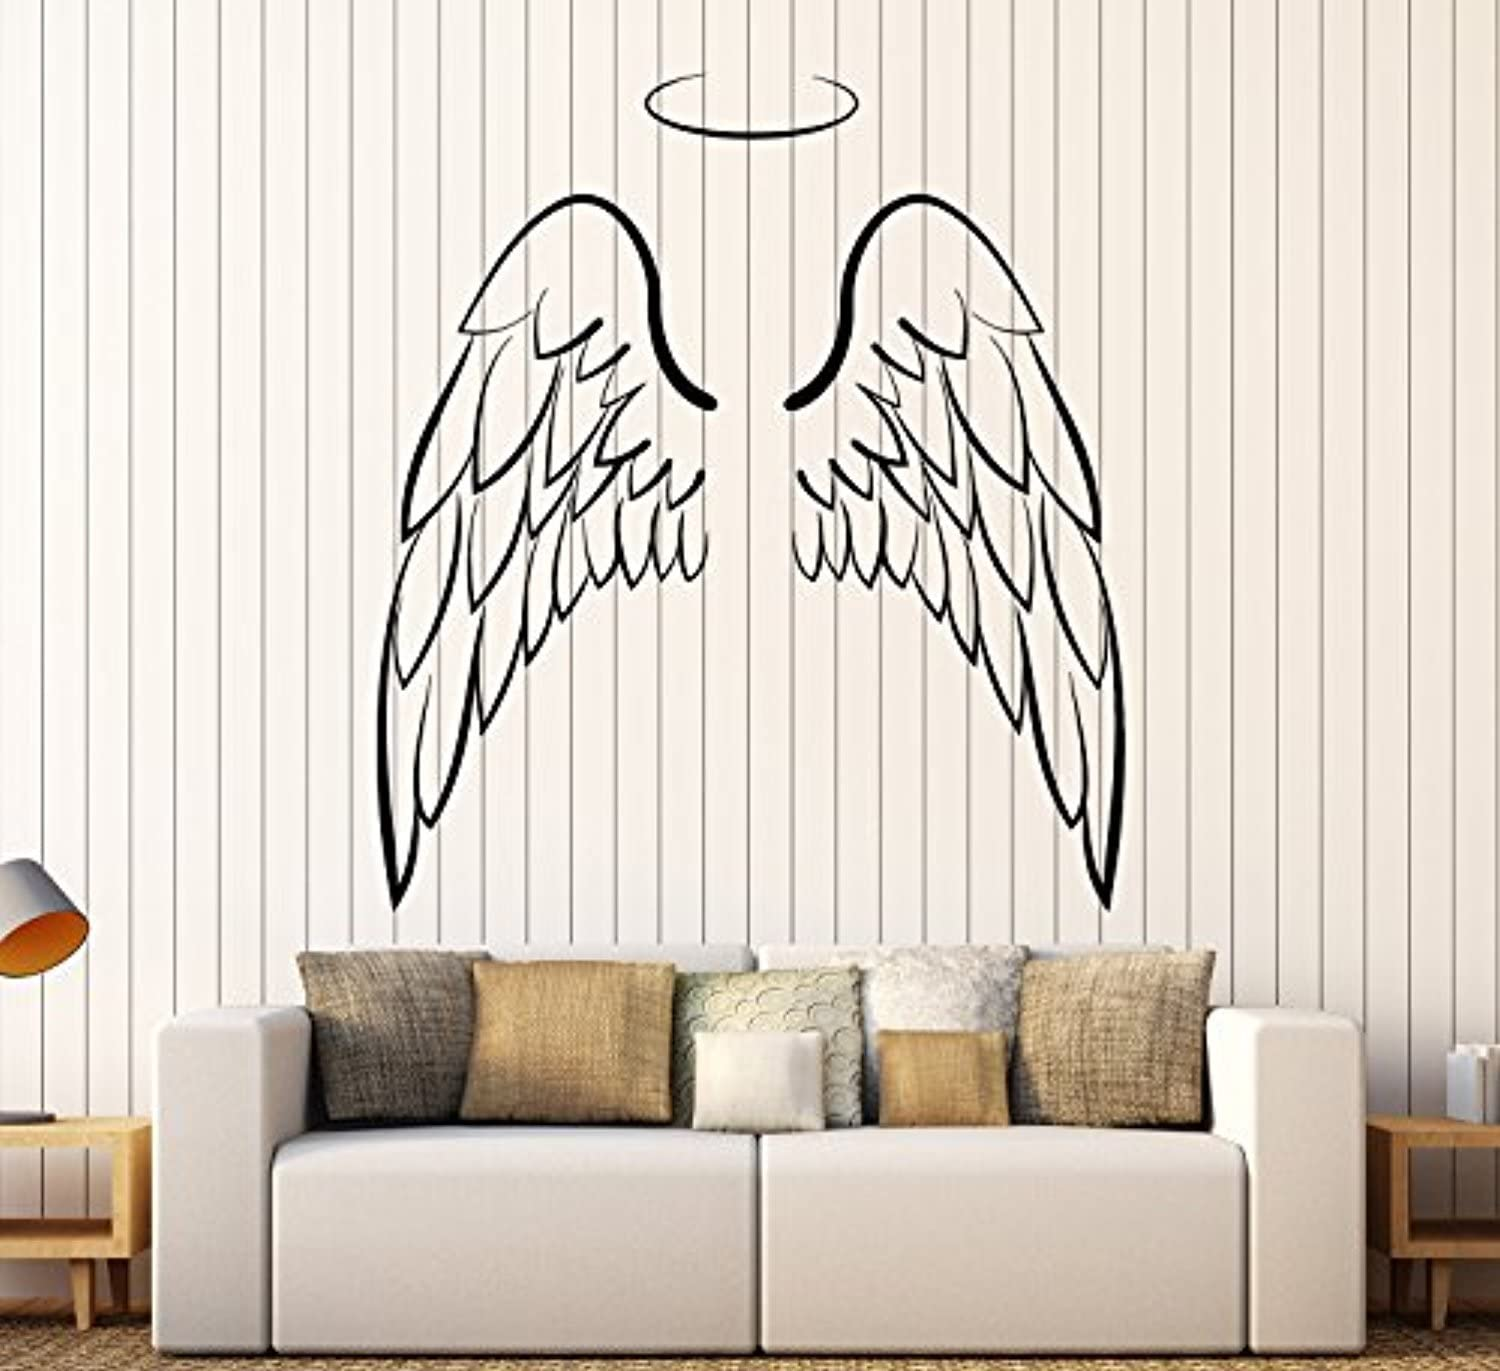 Amazon Com Amazing Home Decor Large Vinyl Wall Decal Angel Wings Bedroom Decoration Stickers Made In The Usa Removable Home Kitchen